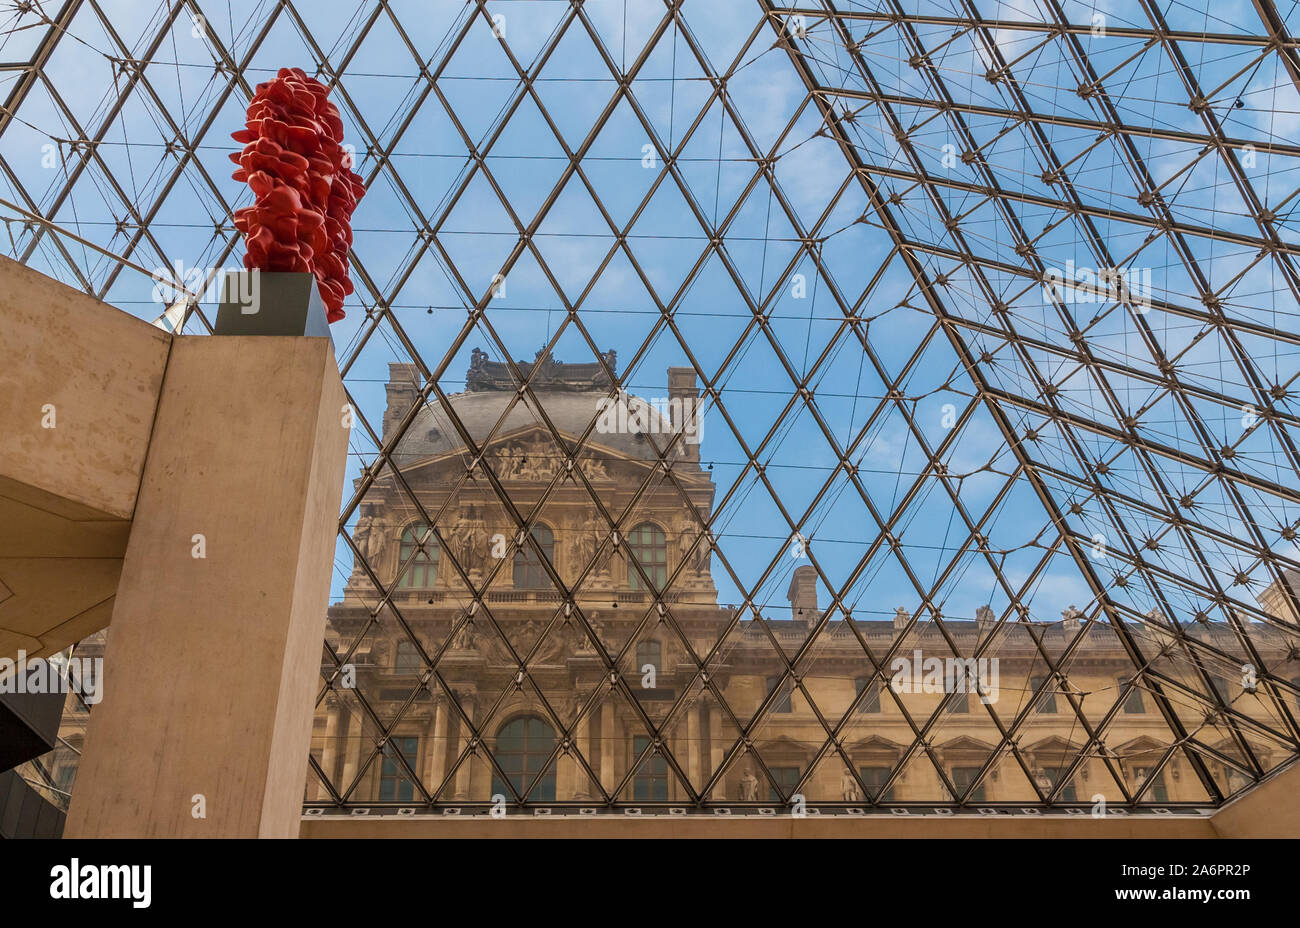 Special view of the Richelieu Wing through the glass of the Louvre Pyramid in Paris from the underground lobby of the museum with the red sculpture... Stock Photo